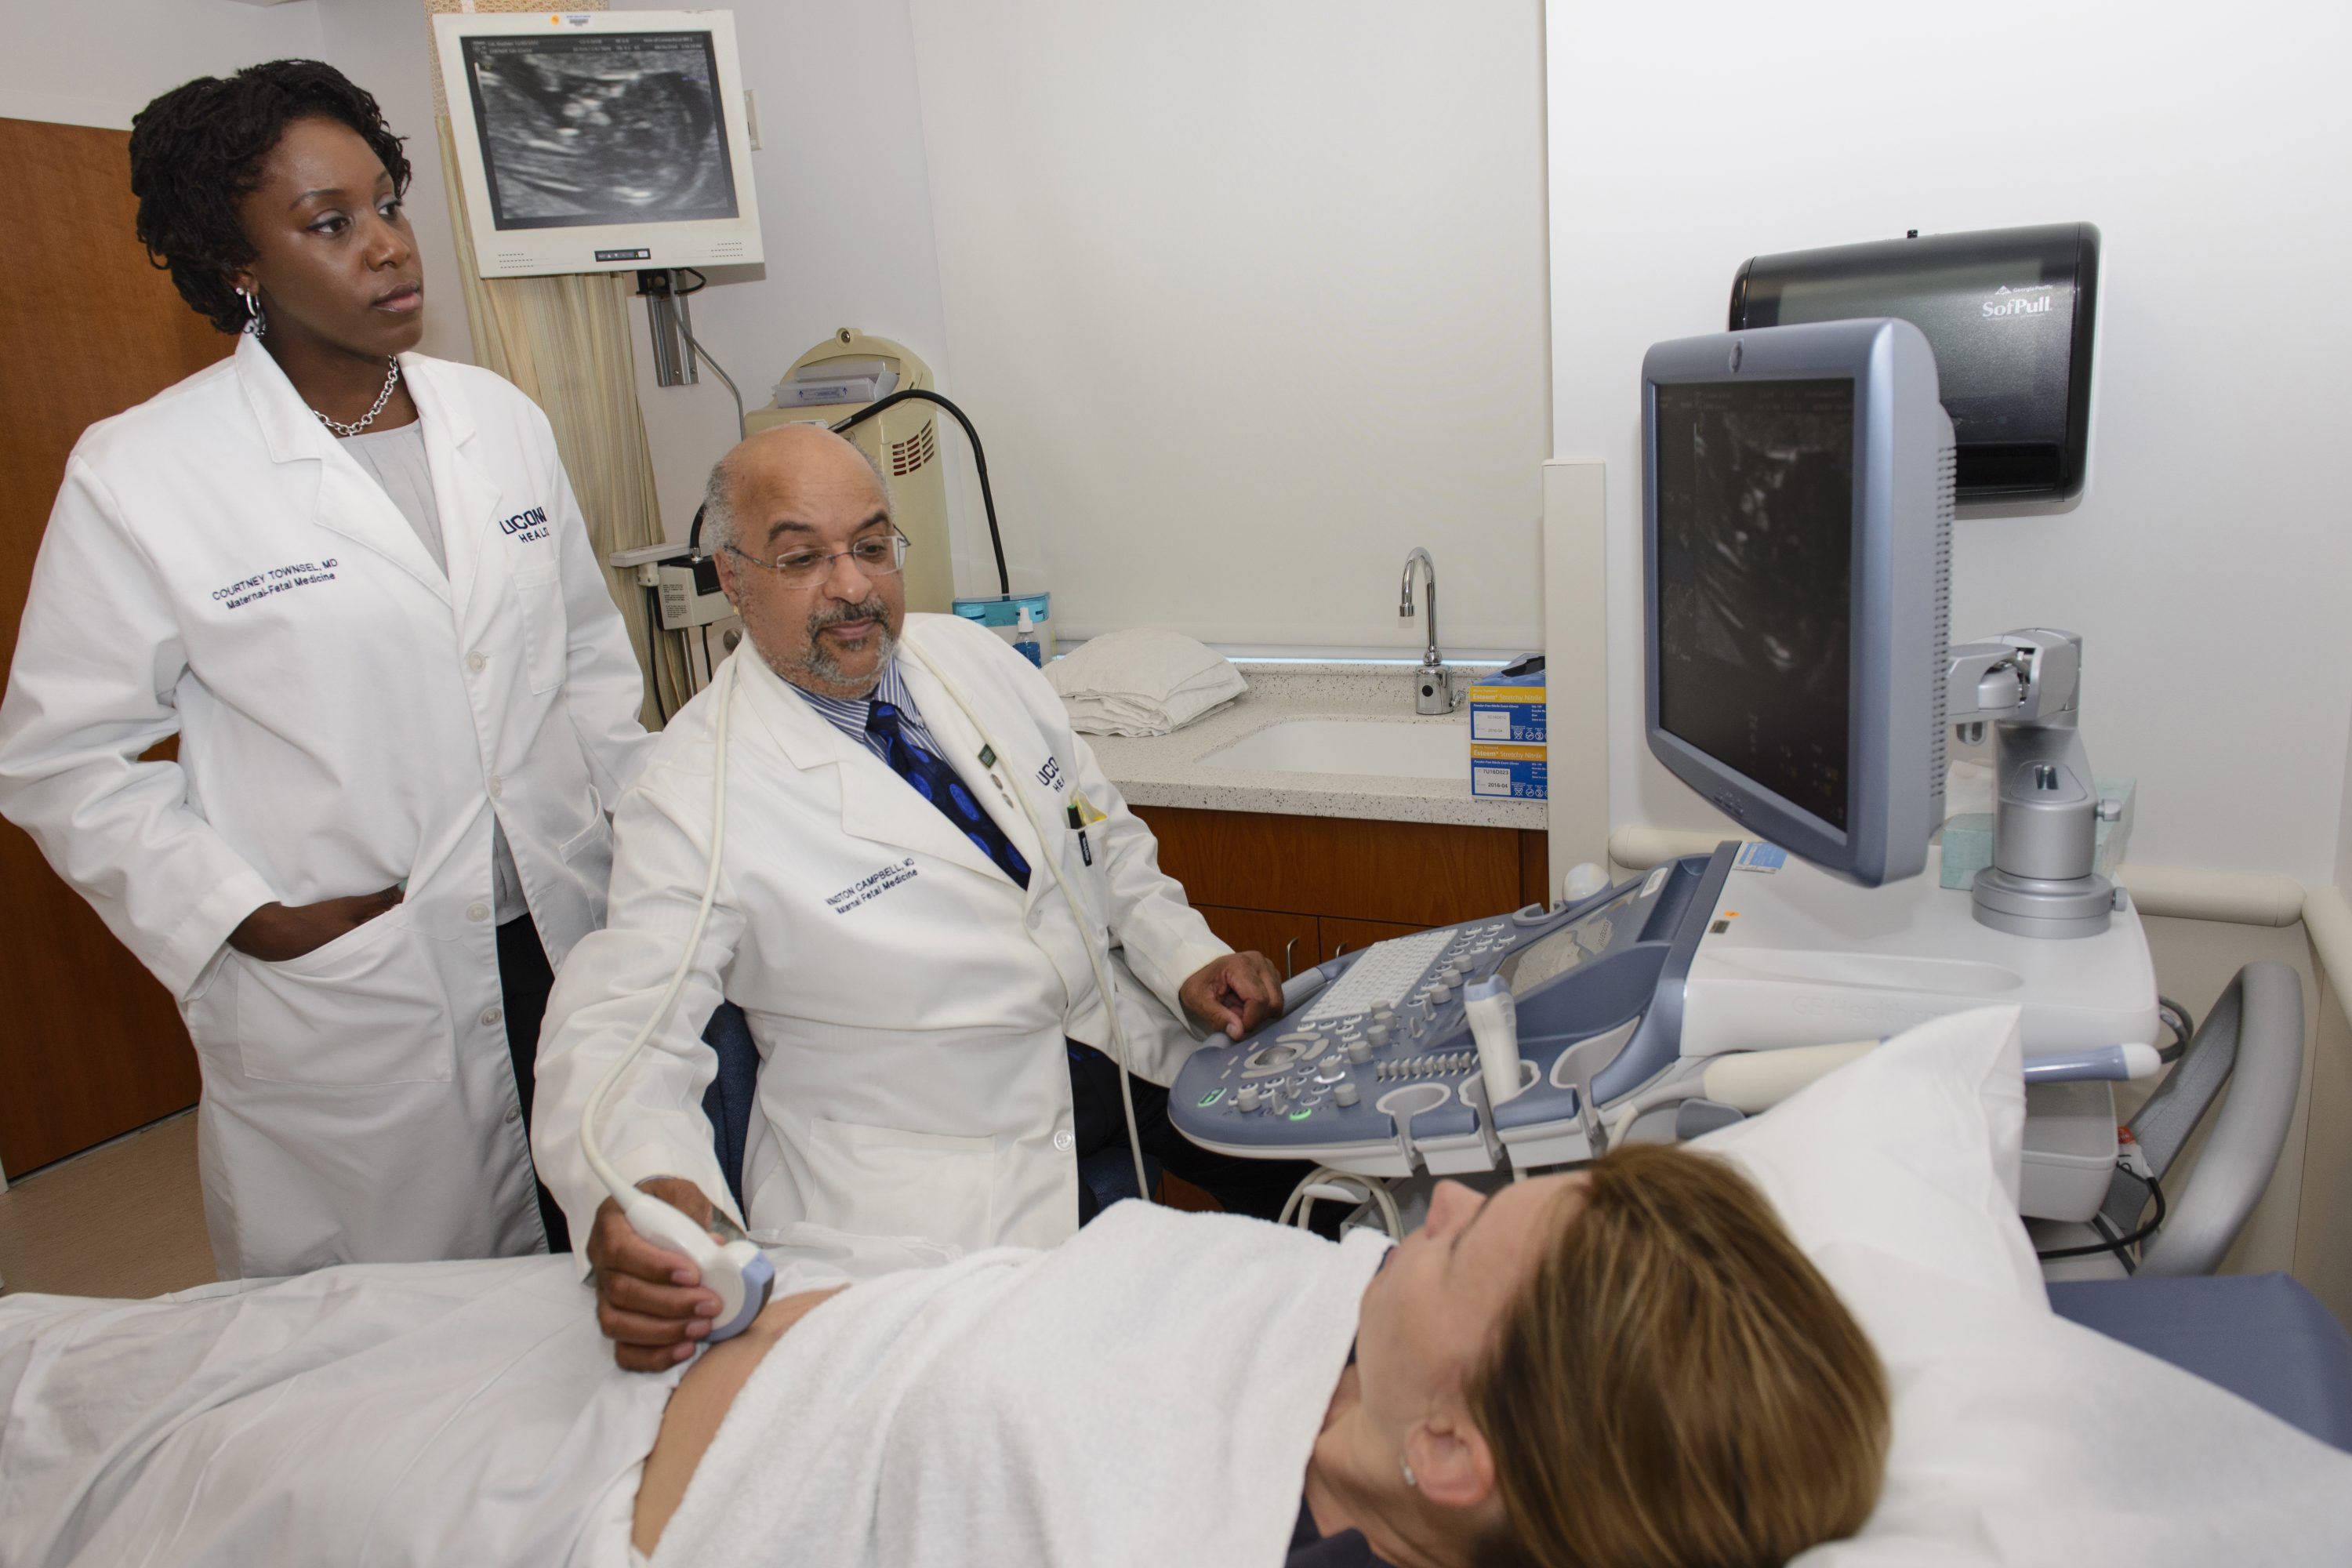 Dr. Courtney Townsel, left, looks on as Dr. Winston Campbell performs an ultrasound on an expectant mother. (Janine Gelineau/UConn Health Photo)